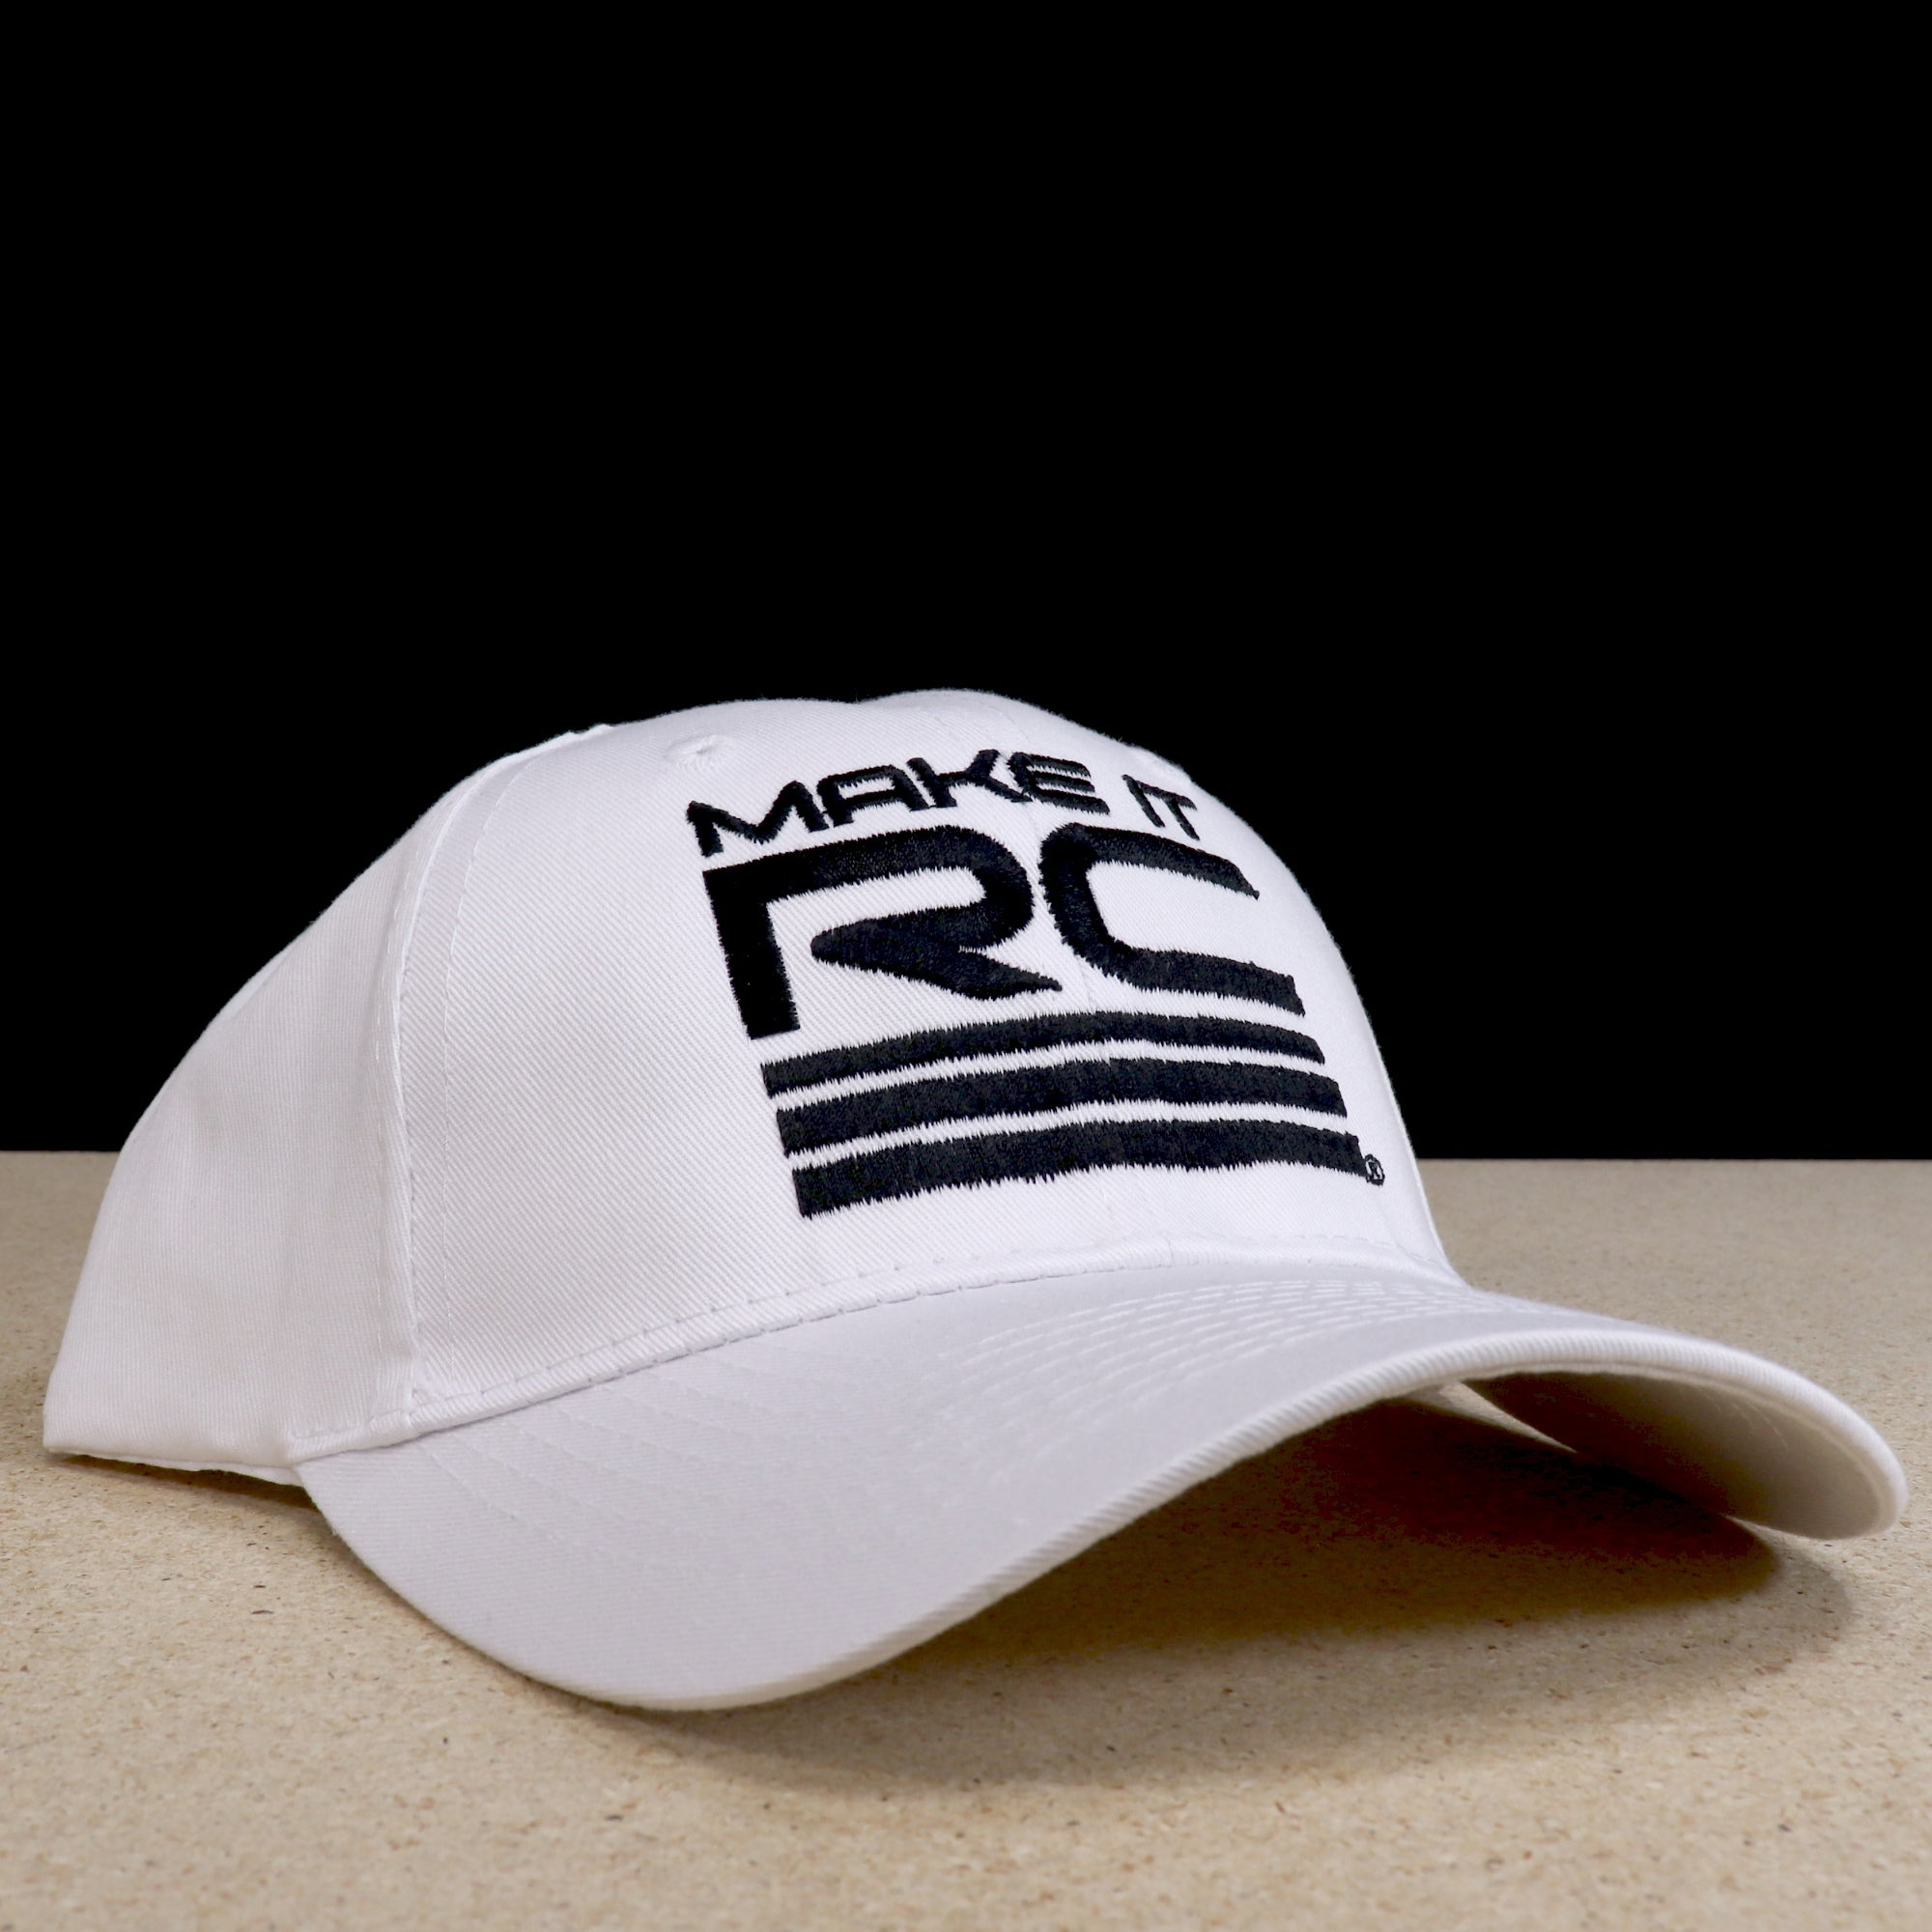 Make It RC White Ball Cap